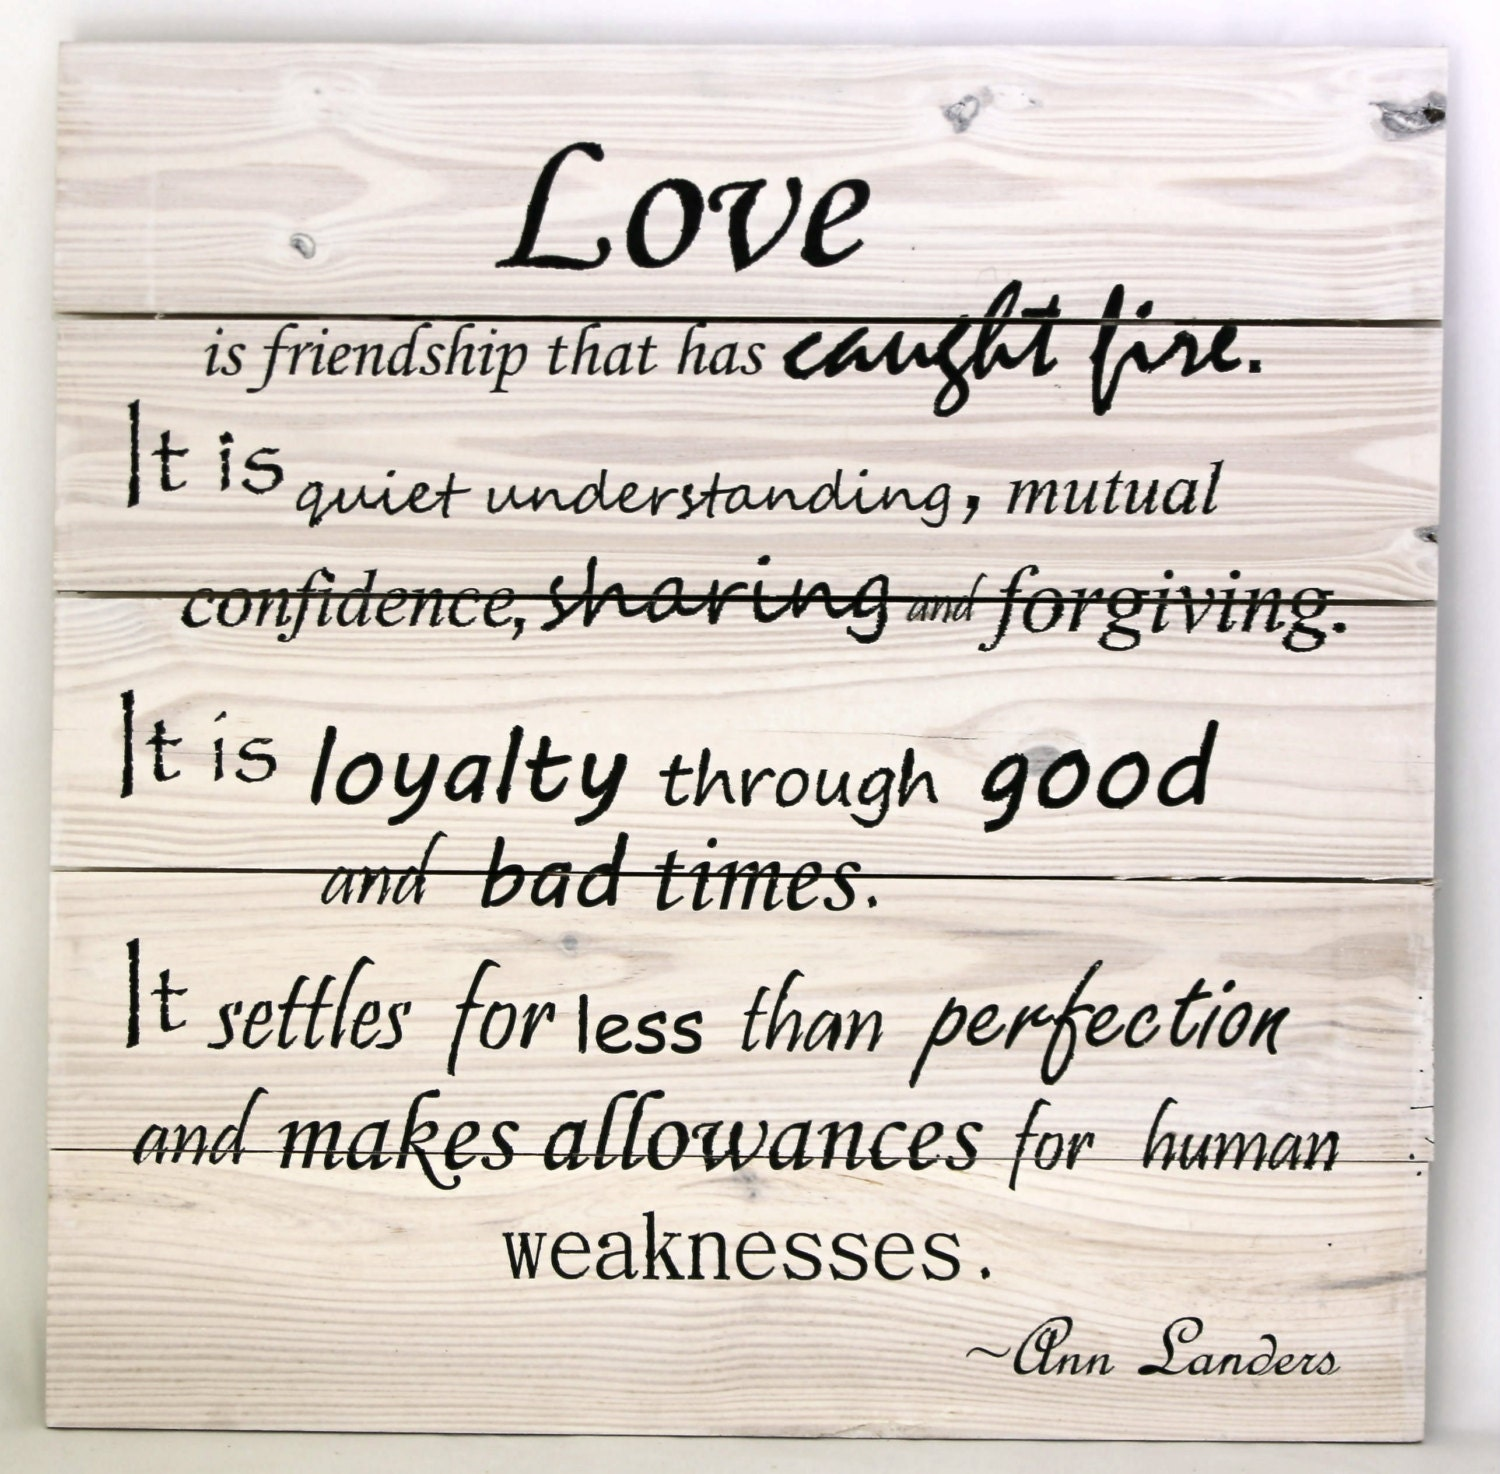 Ann Landers quote on love. White wash stain with flat by IYWCS